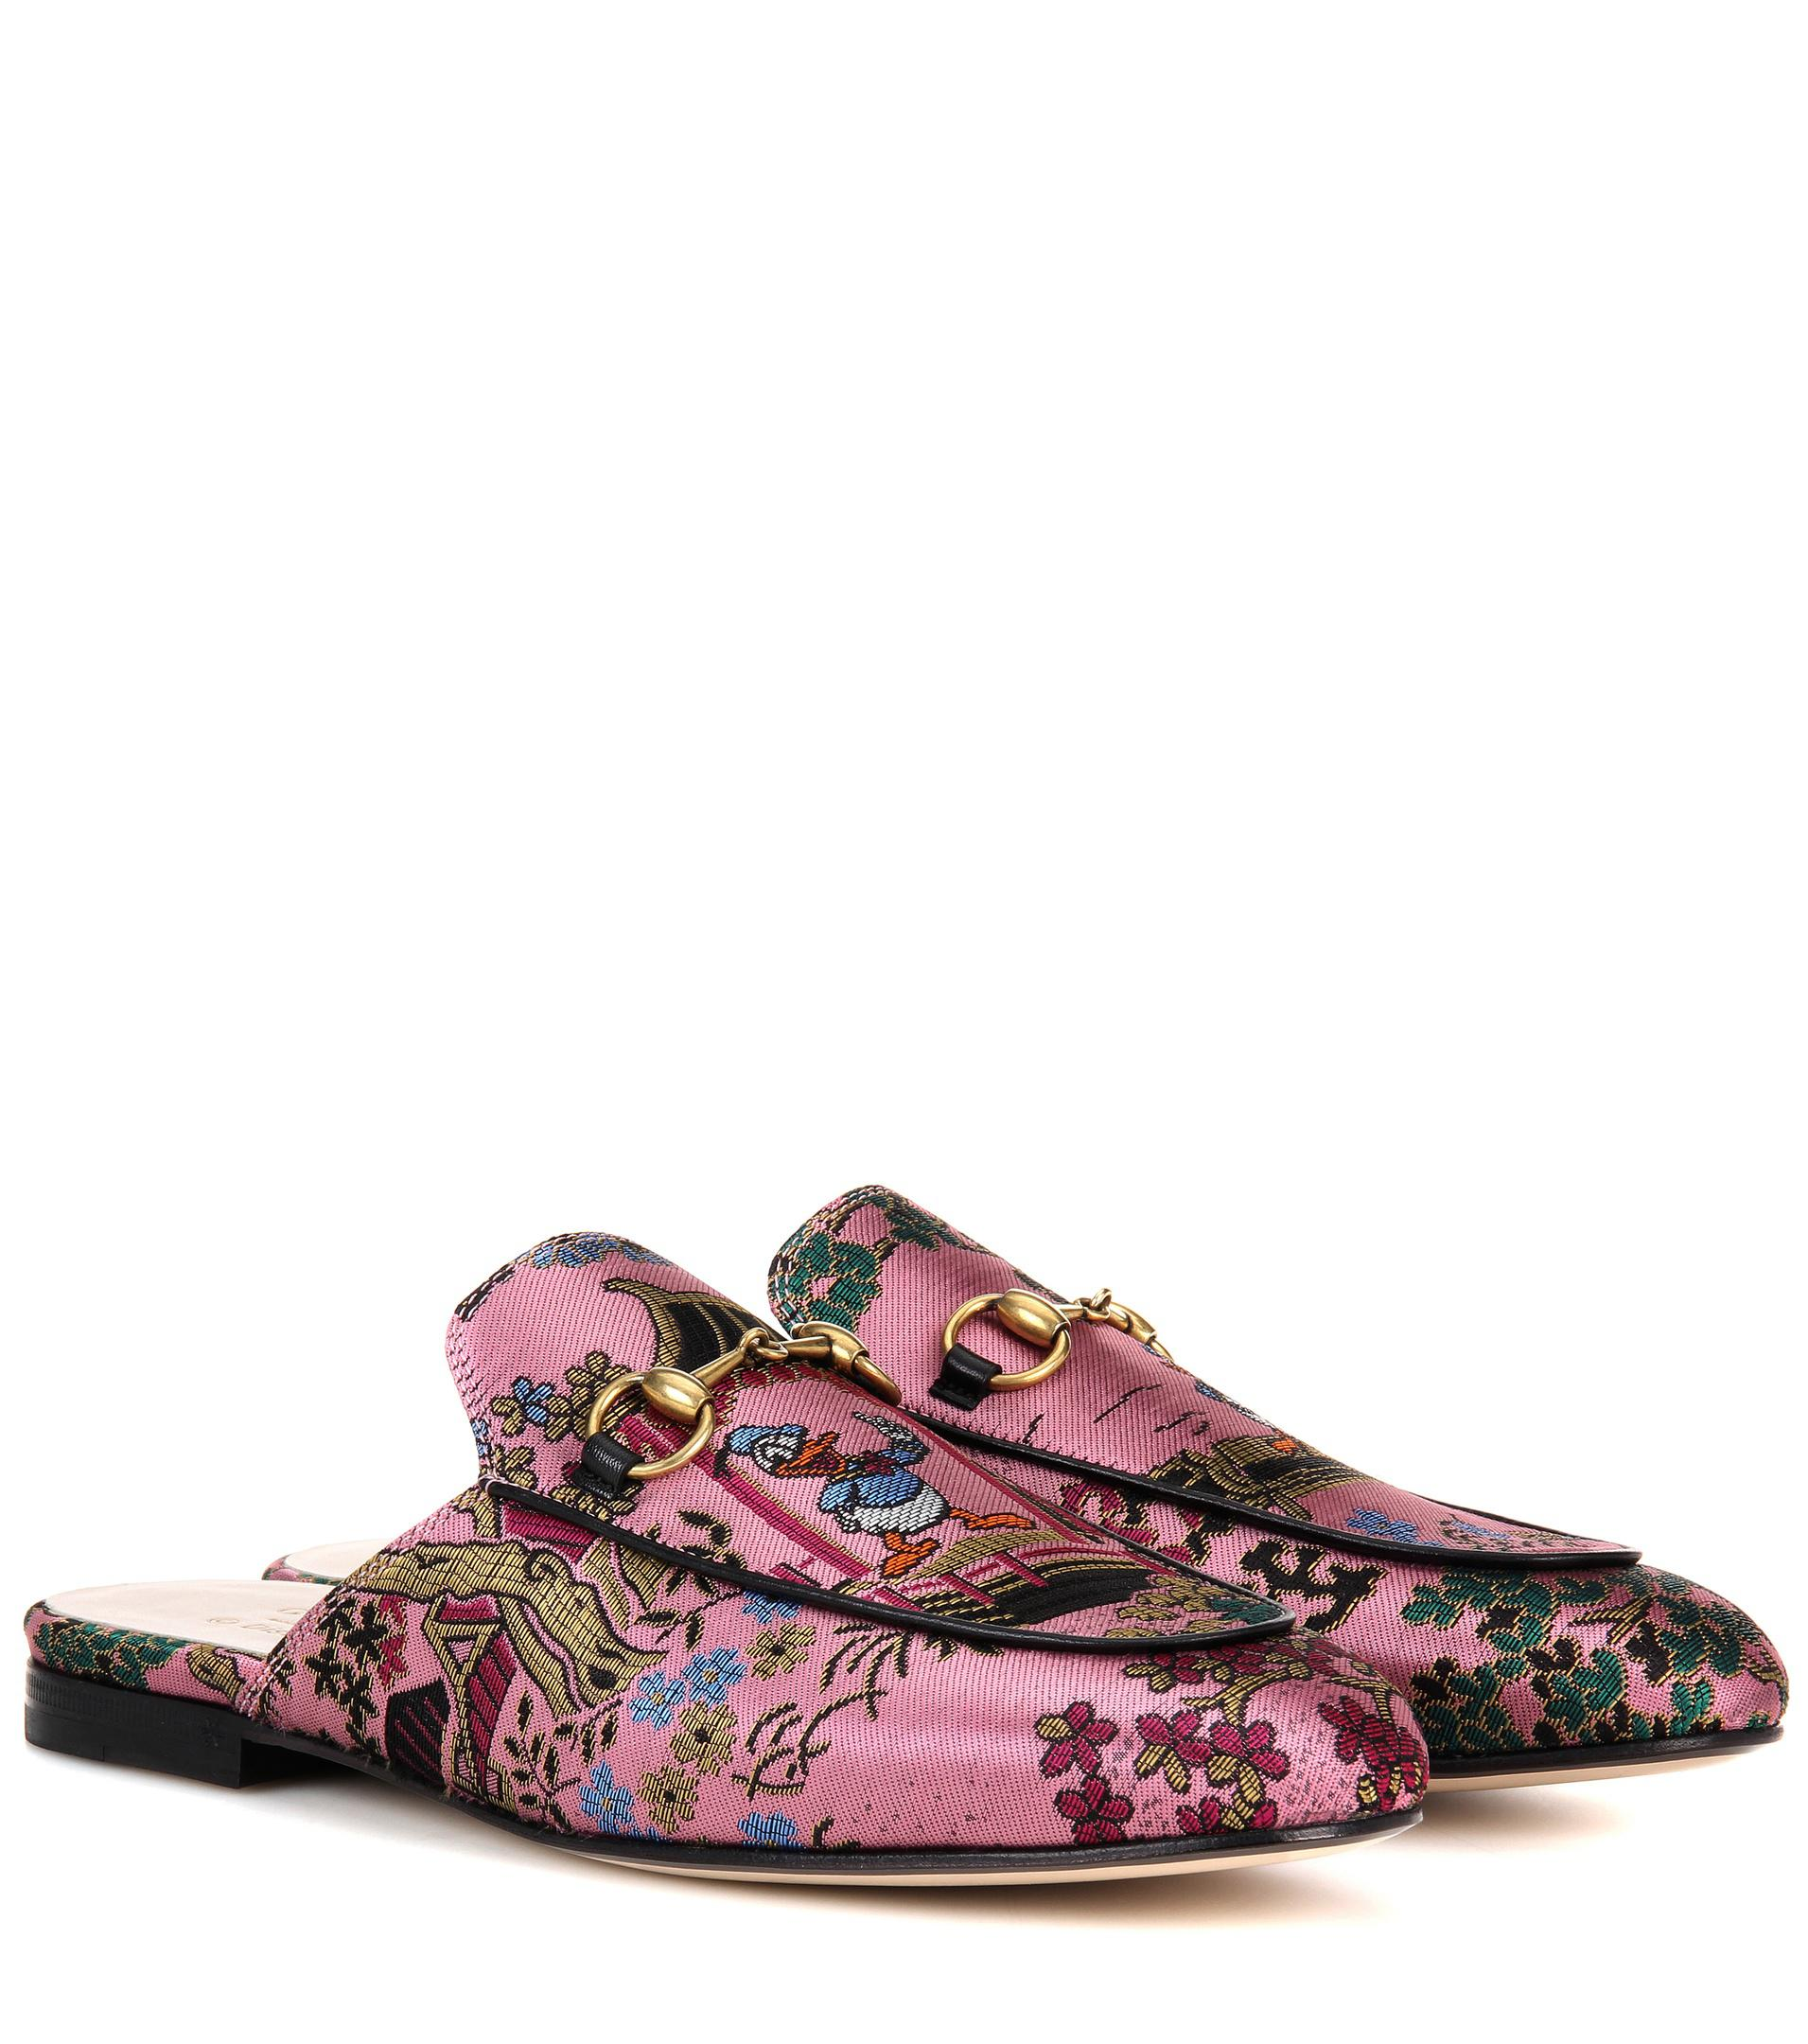 79c4359a768 Lyst - Gucci Princetown Donald Duck Jacquard Slippers in Pink